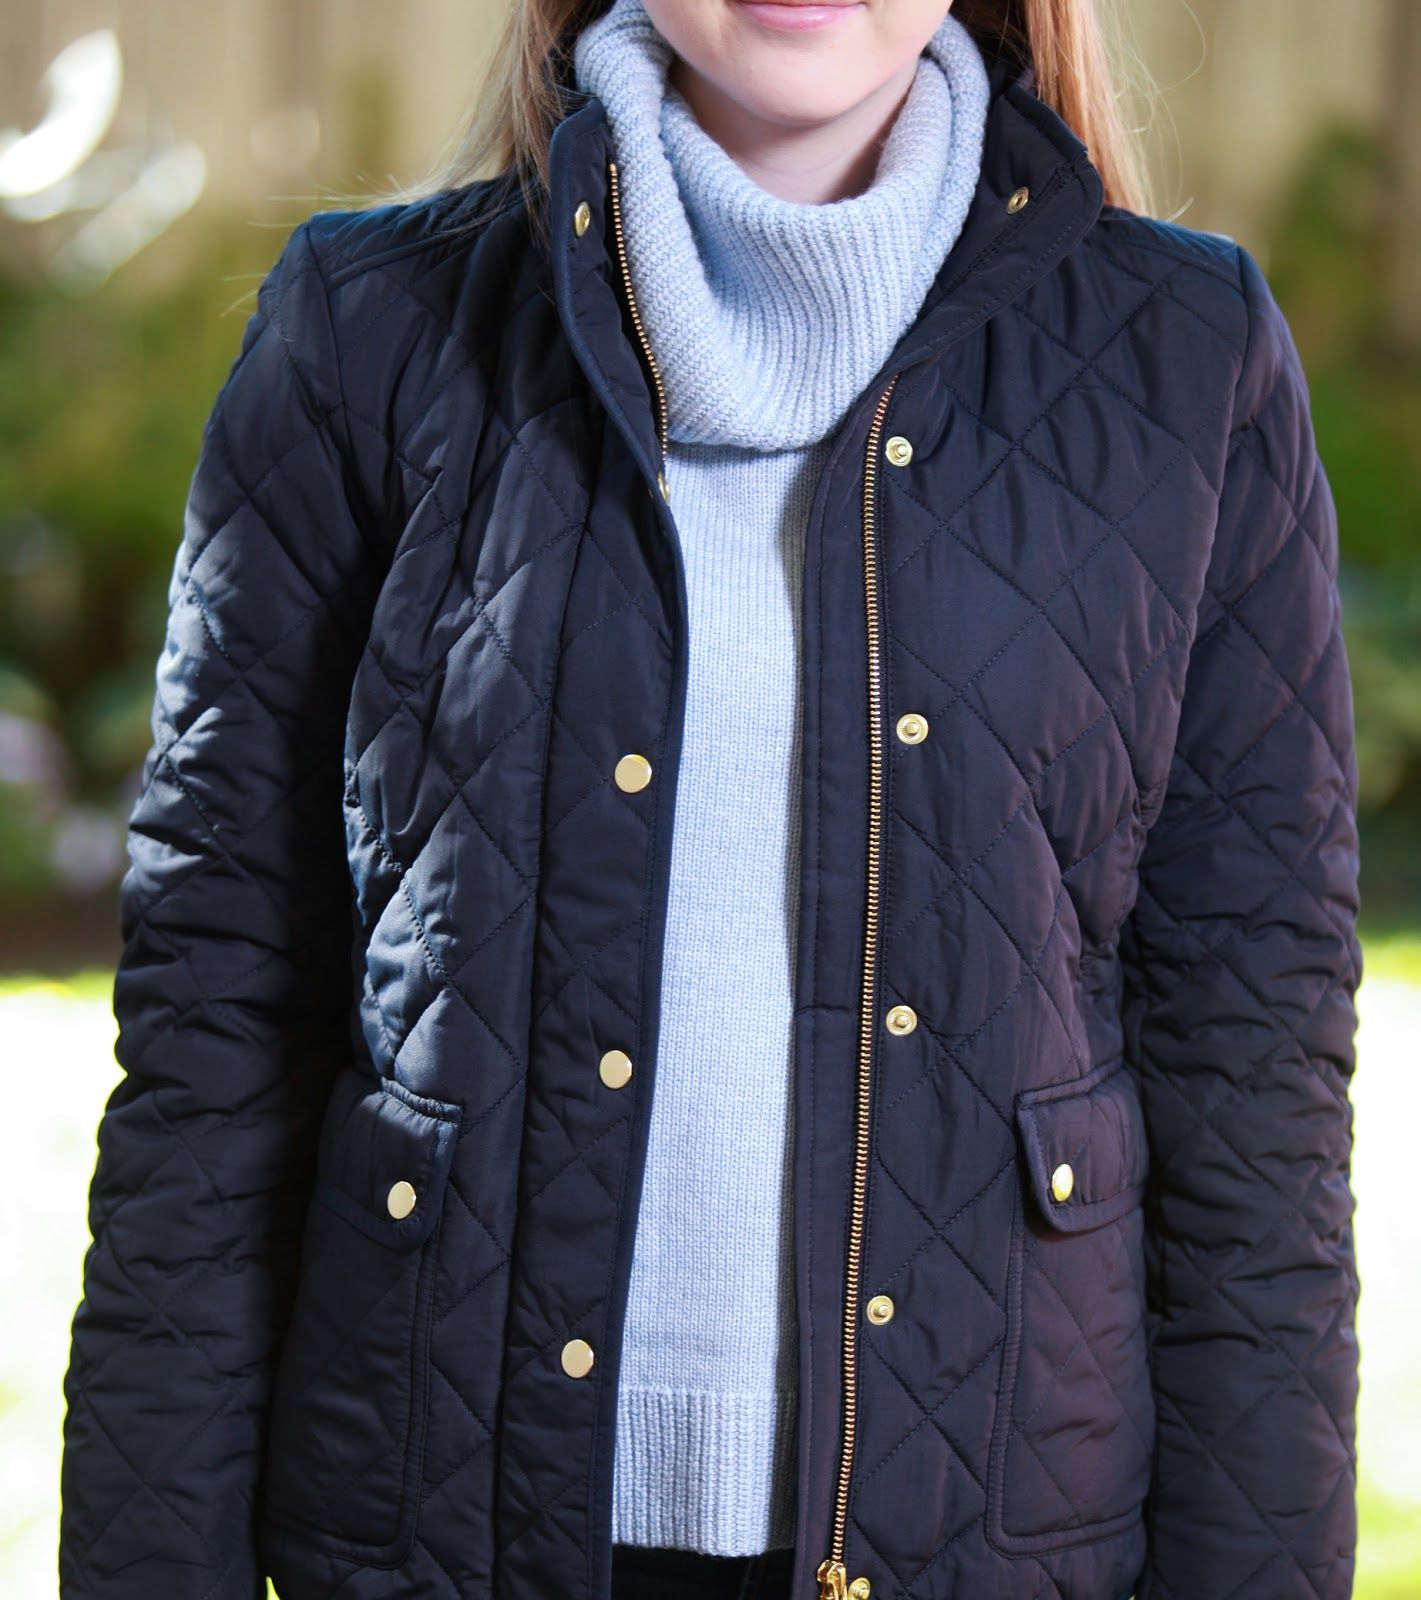 Plaid & Pearls: JCrew Quilted Fall Jacket // Preppy Fall Fashion ... : quilted fall jacket - Adamdwight.com